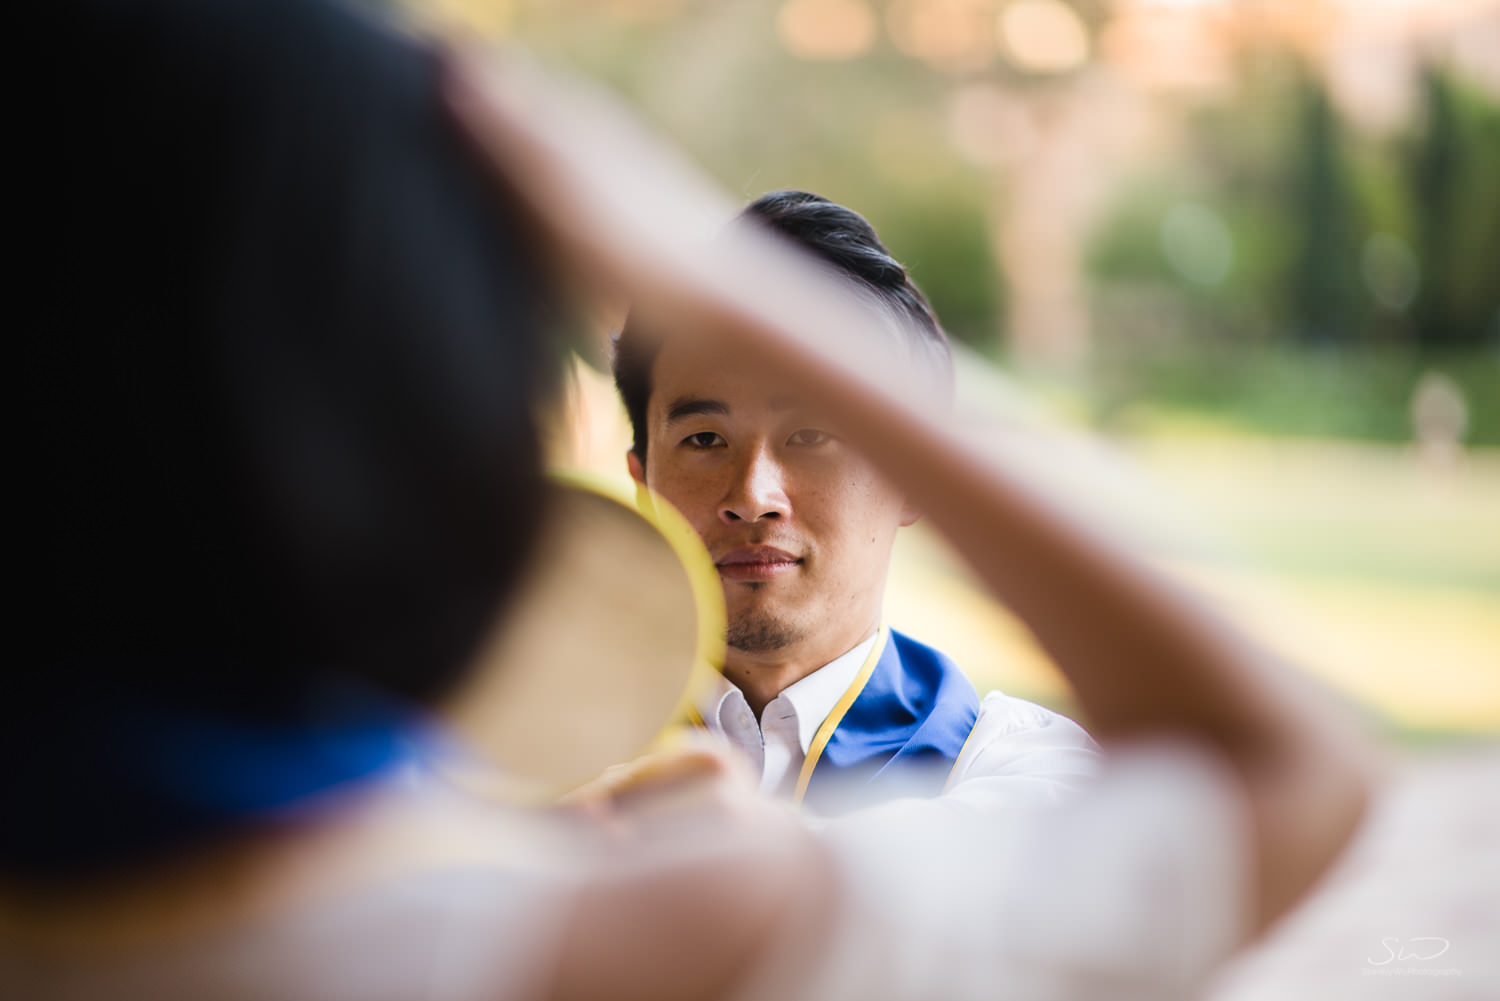 Copy of Copy of behind the scenes makeup with boyfriend holding mirror  | Stanley Wu Photography | Los Angeles | Graduation Portraits | UCLA, USC, LMU, Pepperdine, CSULA, CSUN, CSULB, UCI, UCSD